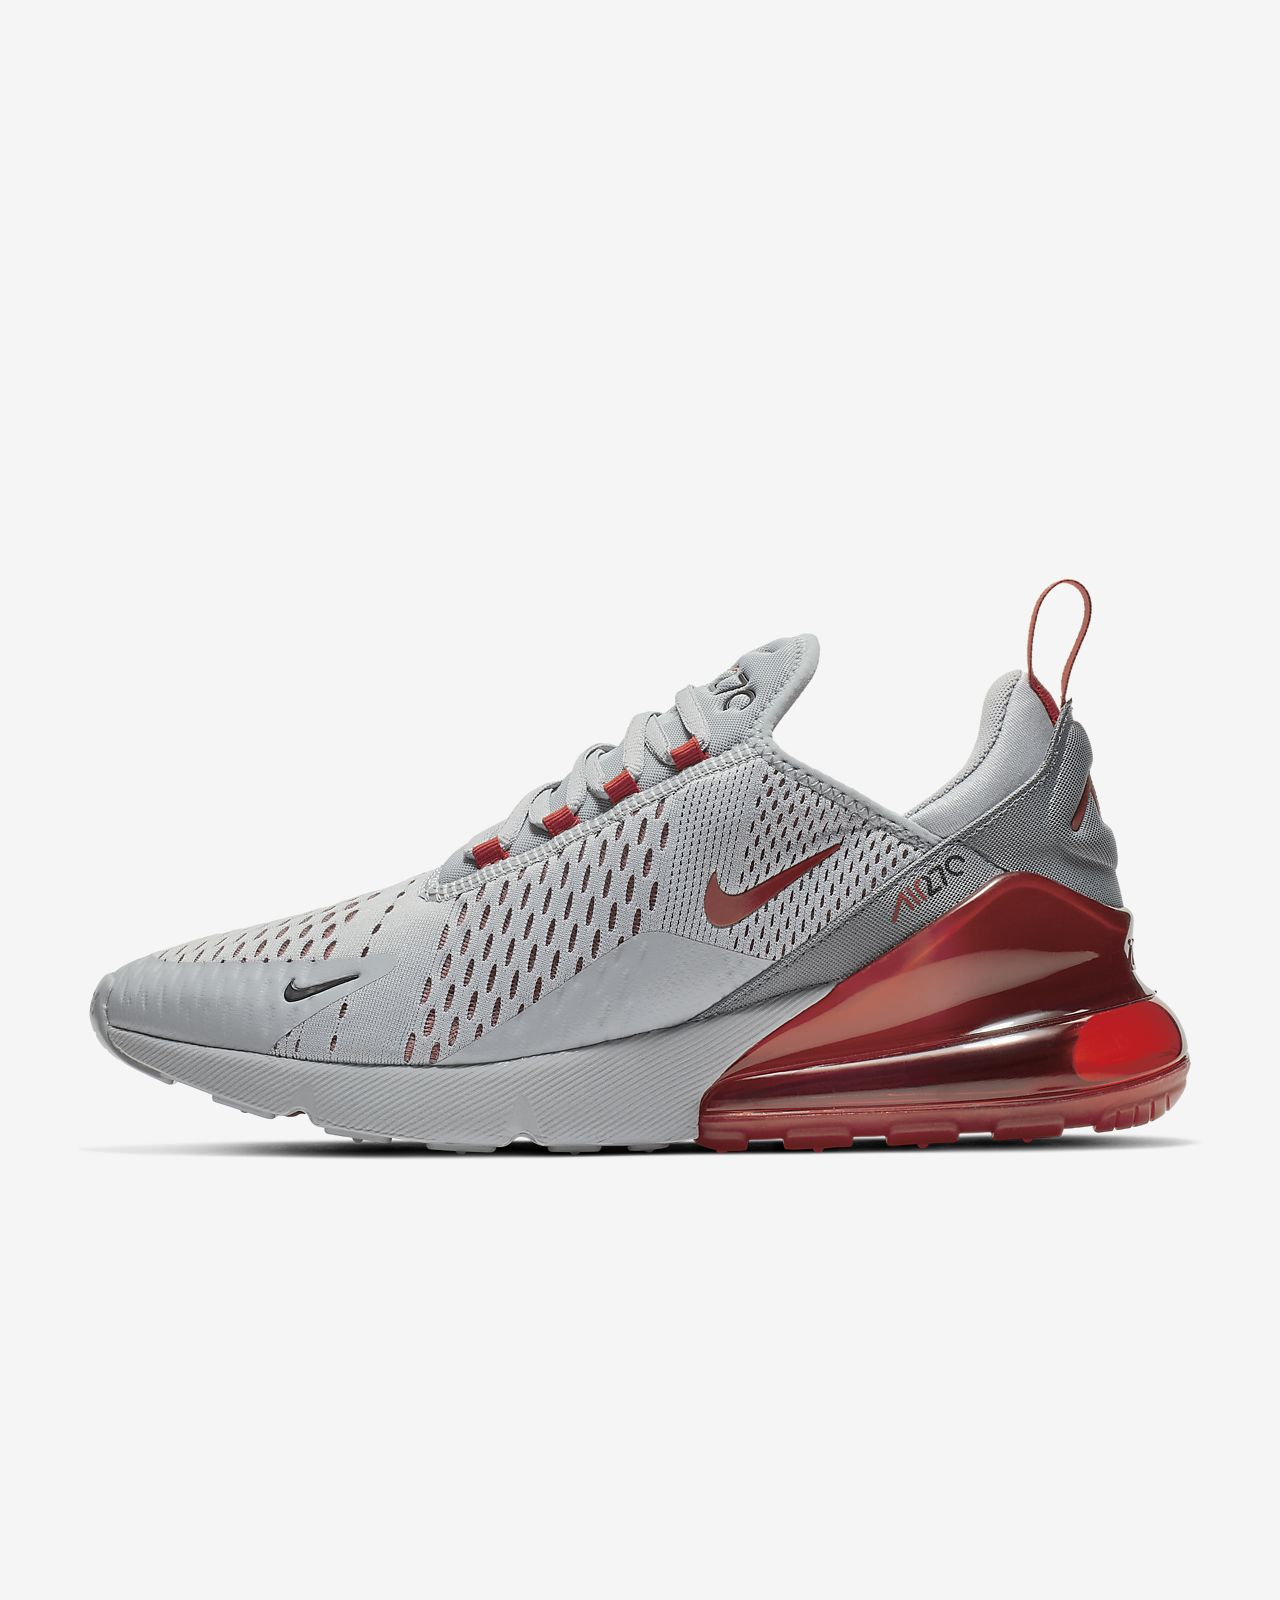 meet da131 36bac Men s Shoe. Nike Air Max 270